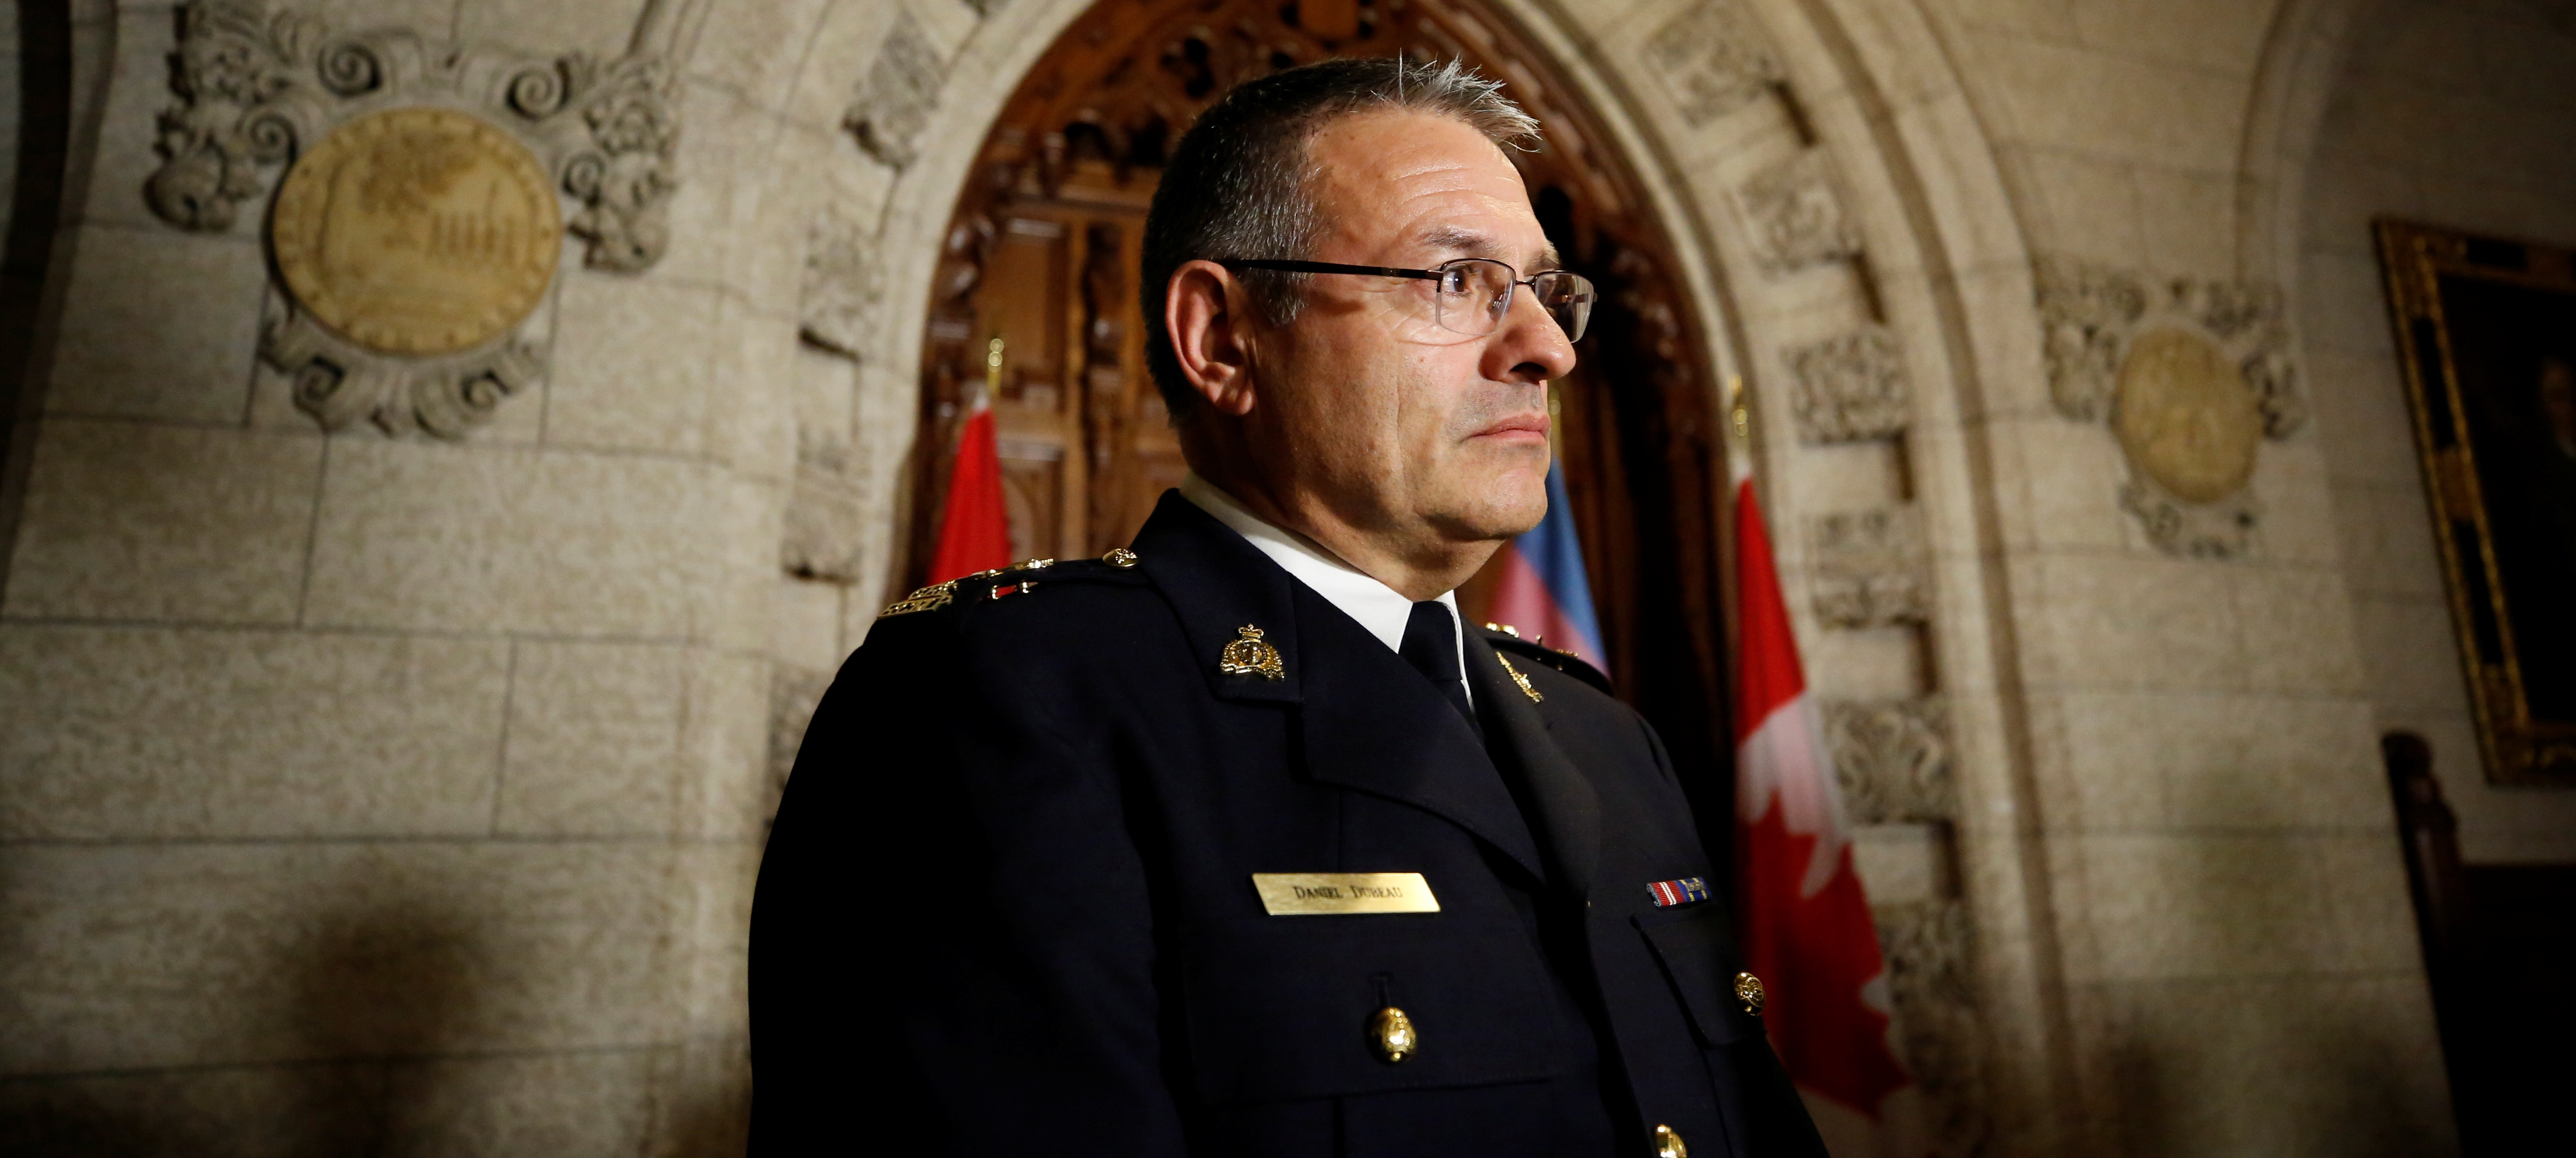 Acting Royal Canadian Mounted Police (RCMP) Commissioner Daniel Dubeau takes part in a news conference on Parliament Hill in Ottawa, Ontario, Canada, November 28, 2017. REUTERS/Chris Wattie